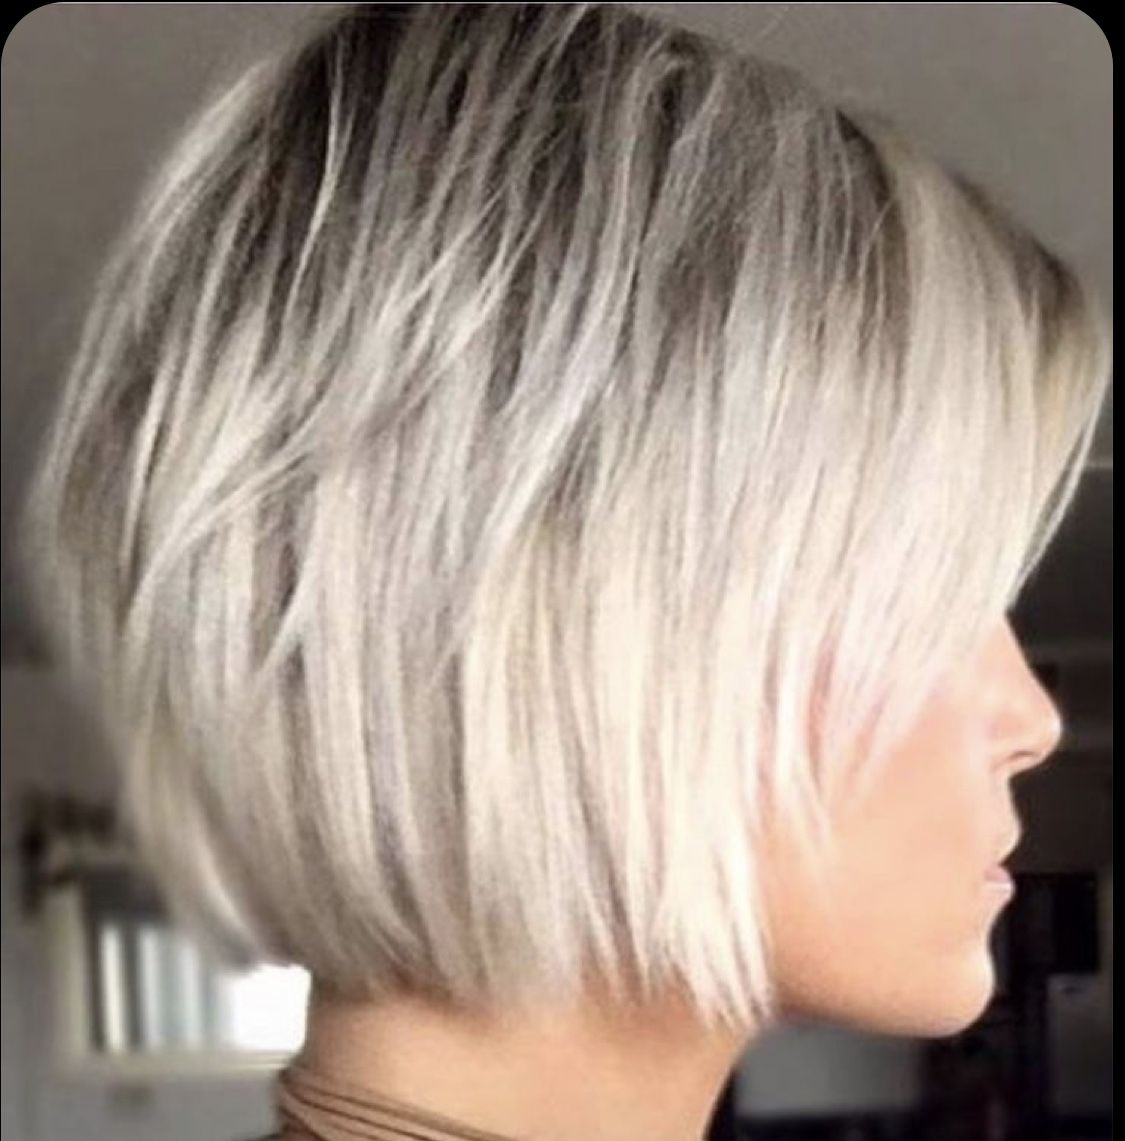 Pin By Mvl On Hair Color In 2020 Bobs For Thin Hair Short Hair Styles Bob Hairstyles For Fine Hair